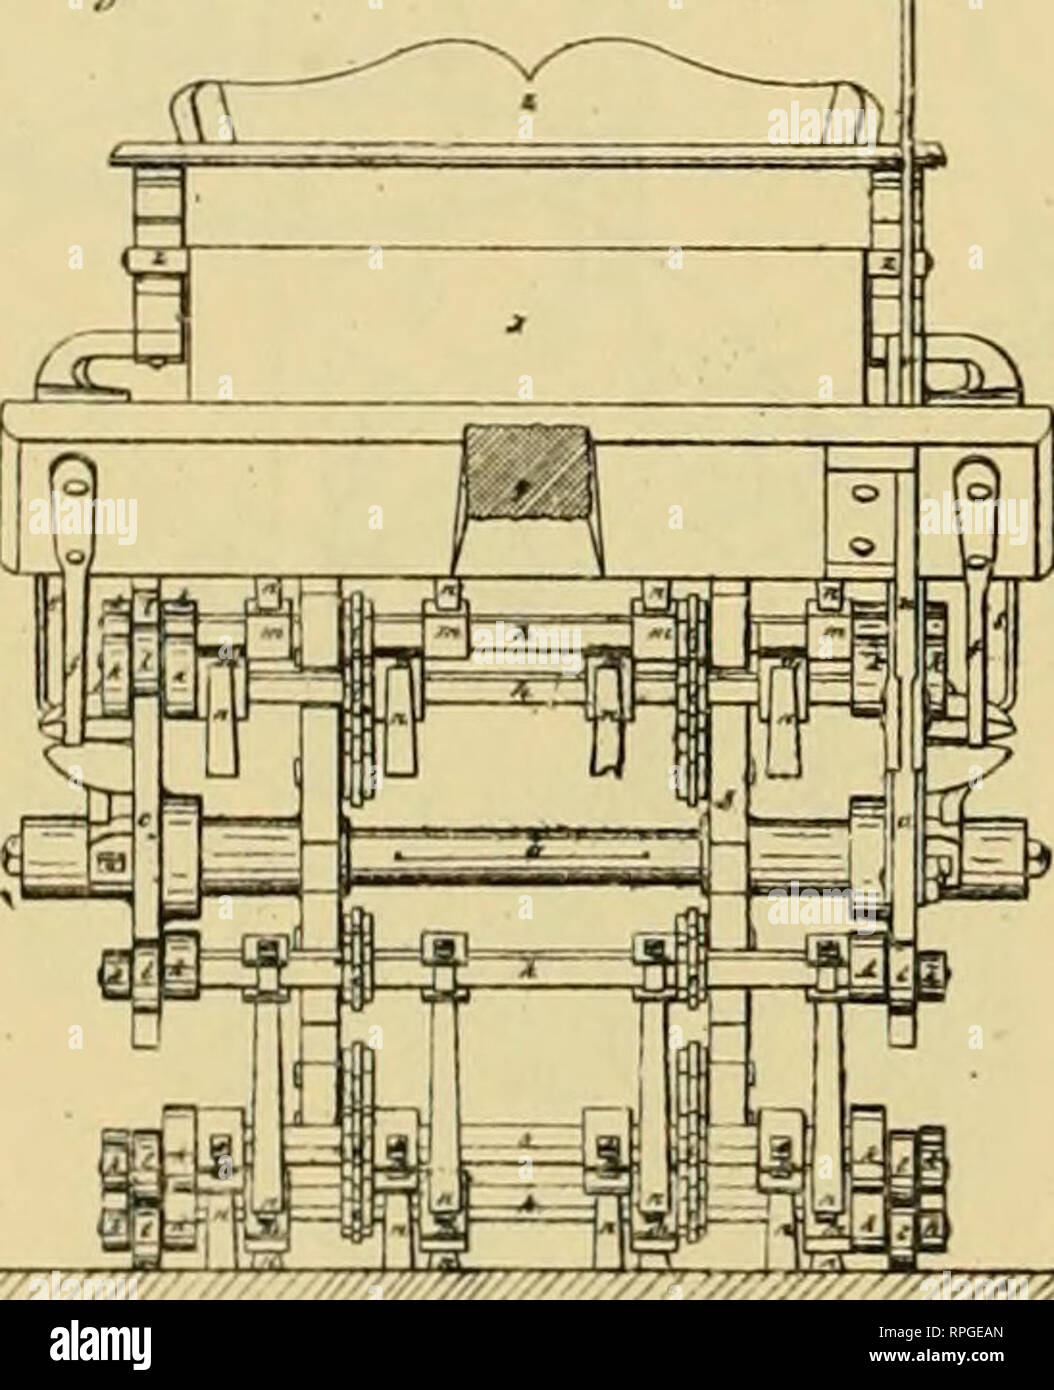 ". Allen's digest of plows, with attachments, patented in the United States from A.D. 1789 to January 1883 ... Plows; Patents. ?'?///?'/////////.yv JiSa^ £ ji^jiiy/r t/Afaf^i. YiJ^f/A' CGmj^fycl Jf*Air,fi^s tSG', J/3(,^Jt J'^ ^-w/^/i. '""r""///////';:'. Please note that these images are extracted from scanned page images that may have been digitally enhanced for readability - coloration and appearance of these illustrations may not perfectly resemble the original work.. Allen, James T. (James Titus). [Washington, D. C. , Joseph Bart, Printer - Stock Image"